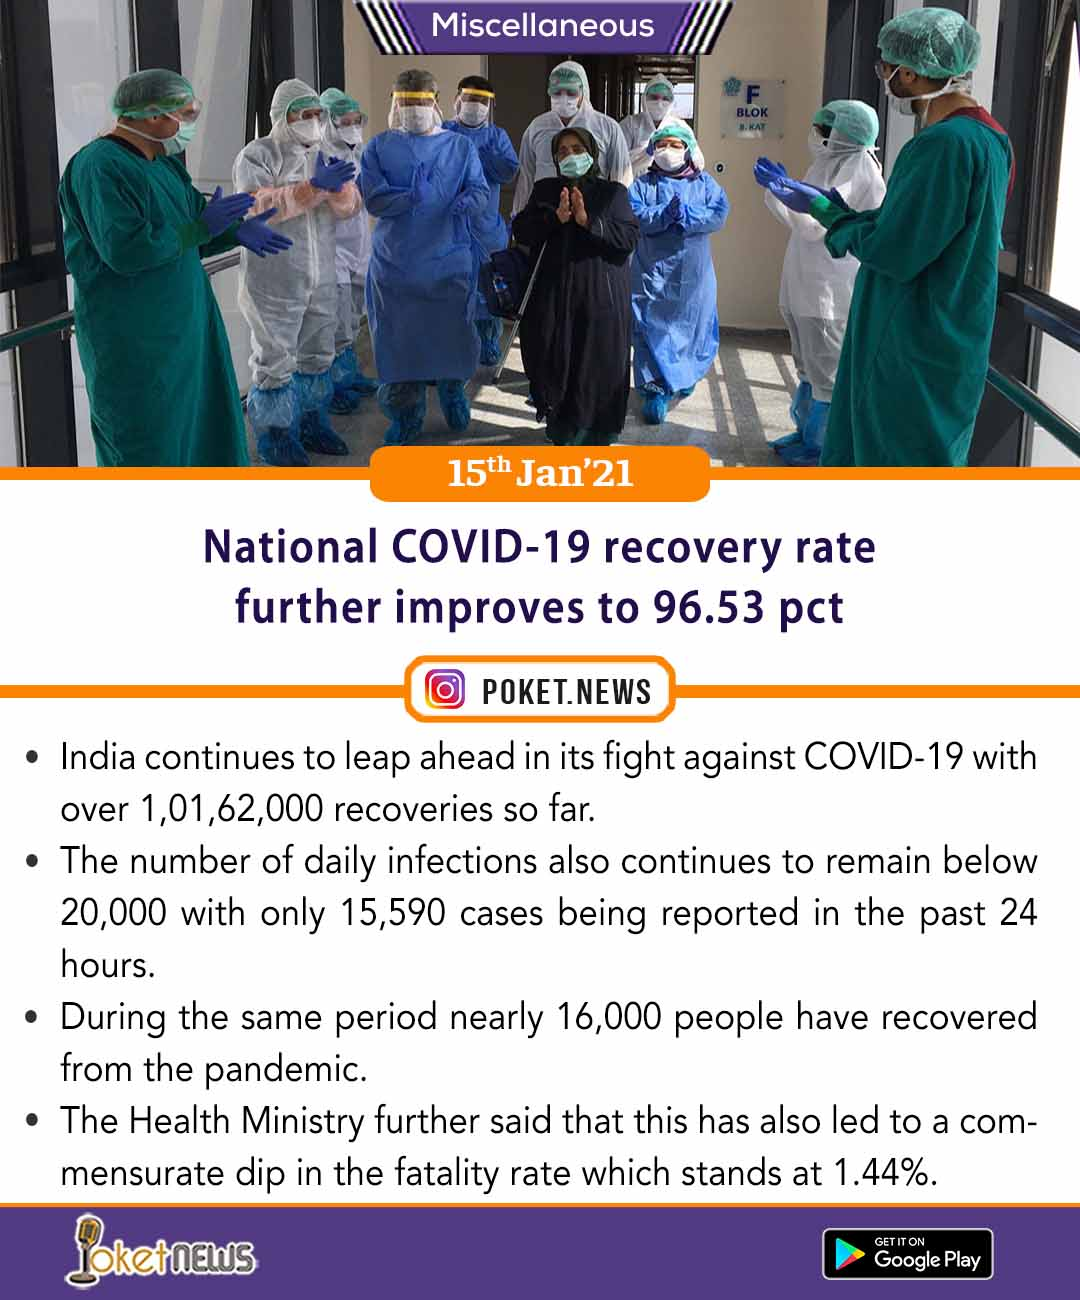 National COVID-19 recovery rate further improves to 96.53 pct